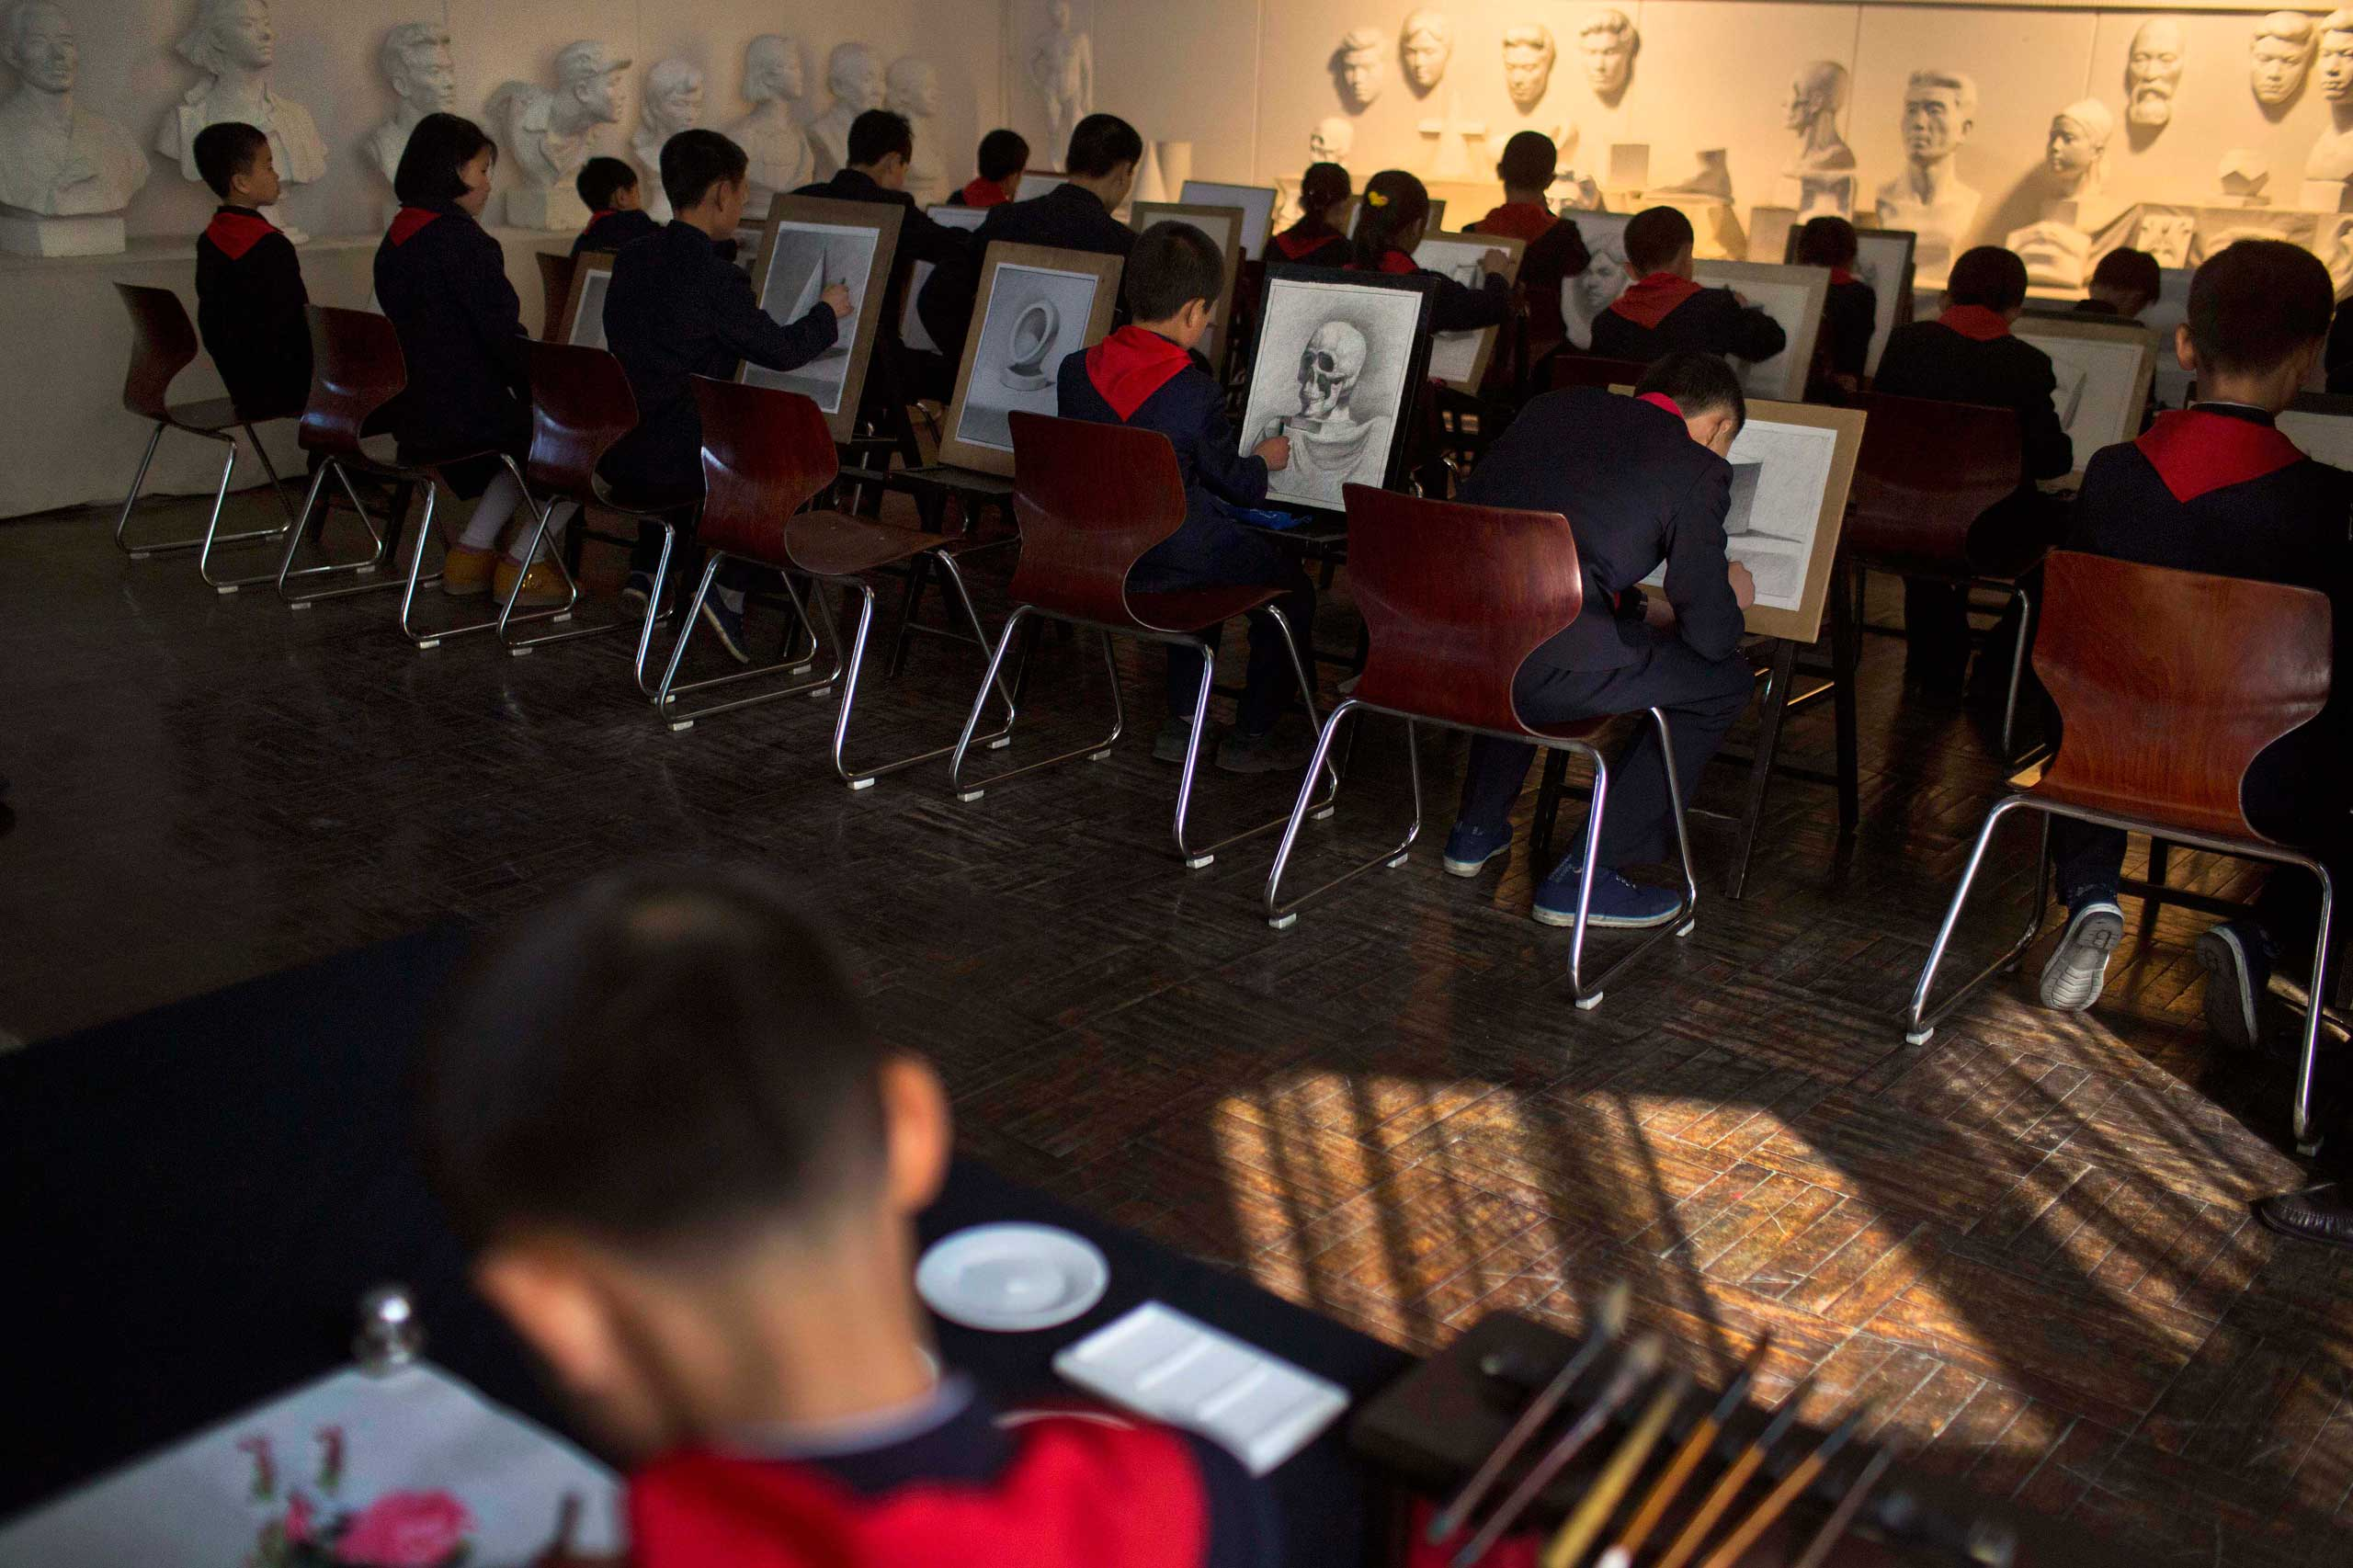 April 18, 2013. North Korean children work at easels during a drawing class at Mangyongdae Children's Palace in Pyongyang, North Korea.